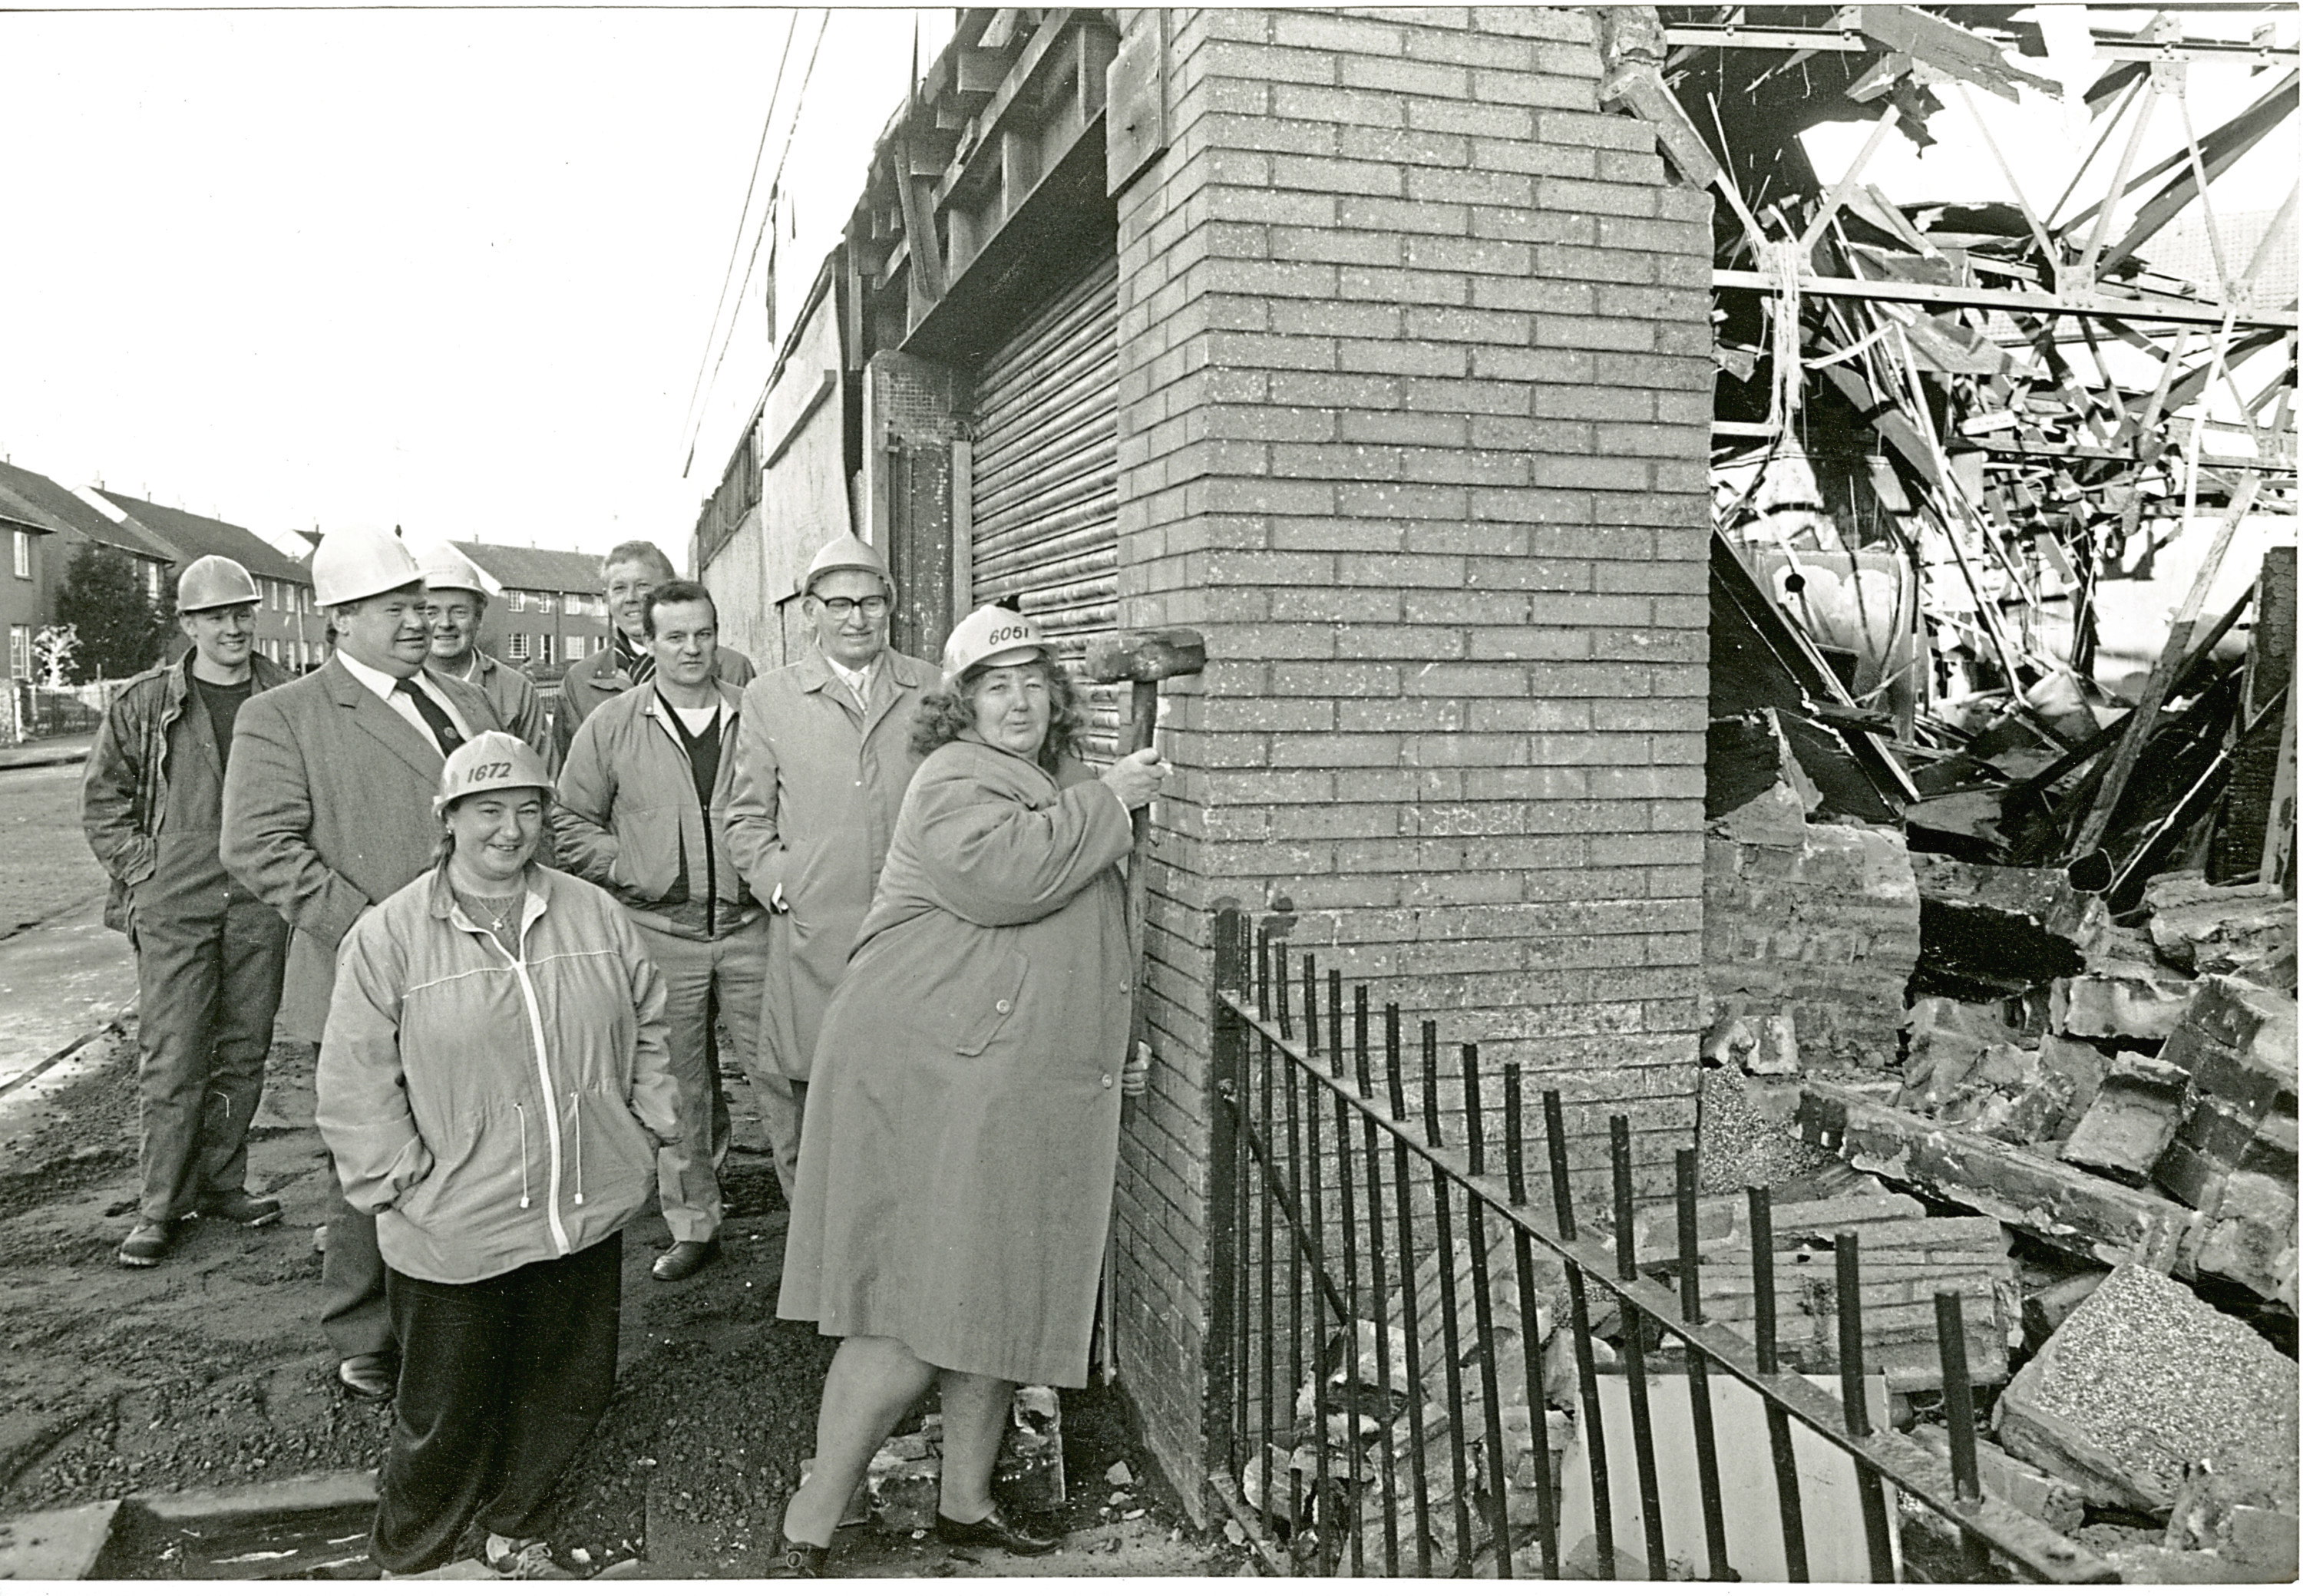 Demolition of Burnt Out Store. The burnt out wreck of a former General Store in Dundee's West March housing scheme was finally demolished two years after it was gutted in a looting spree by local youths. The shops in Balmuir Road was demolished watched by Councillor William McCormack, residents and other officials. 9 January 1989. H259 1989-01-09 Demolition of Burnt Out Store (C)DCT Dundonian. Used in Tele & Post 9 January 1989.